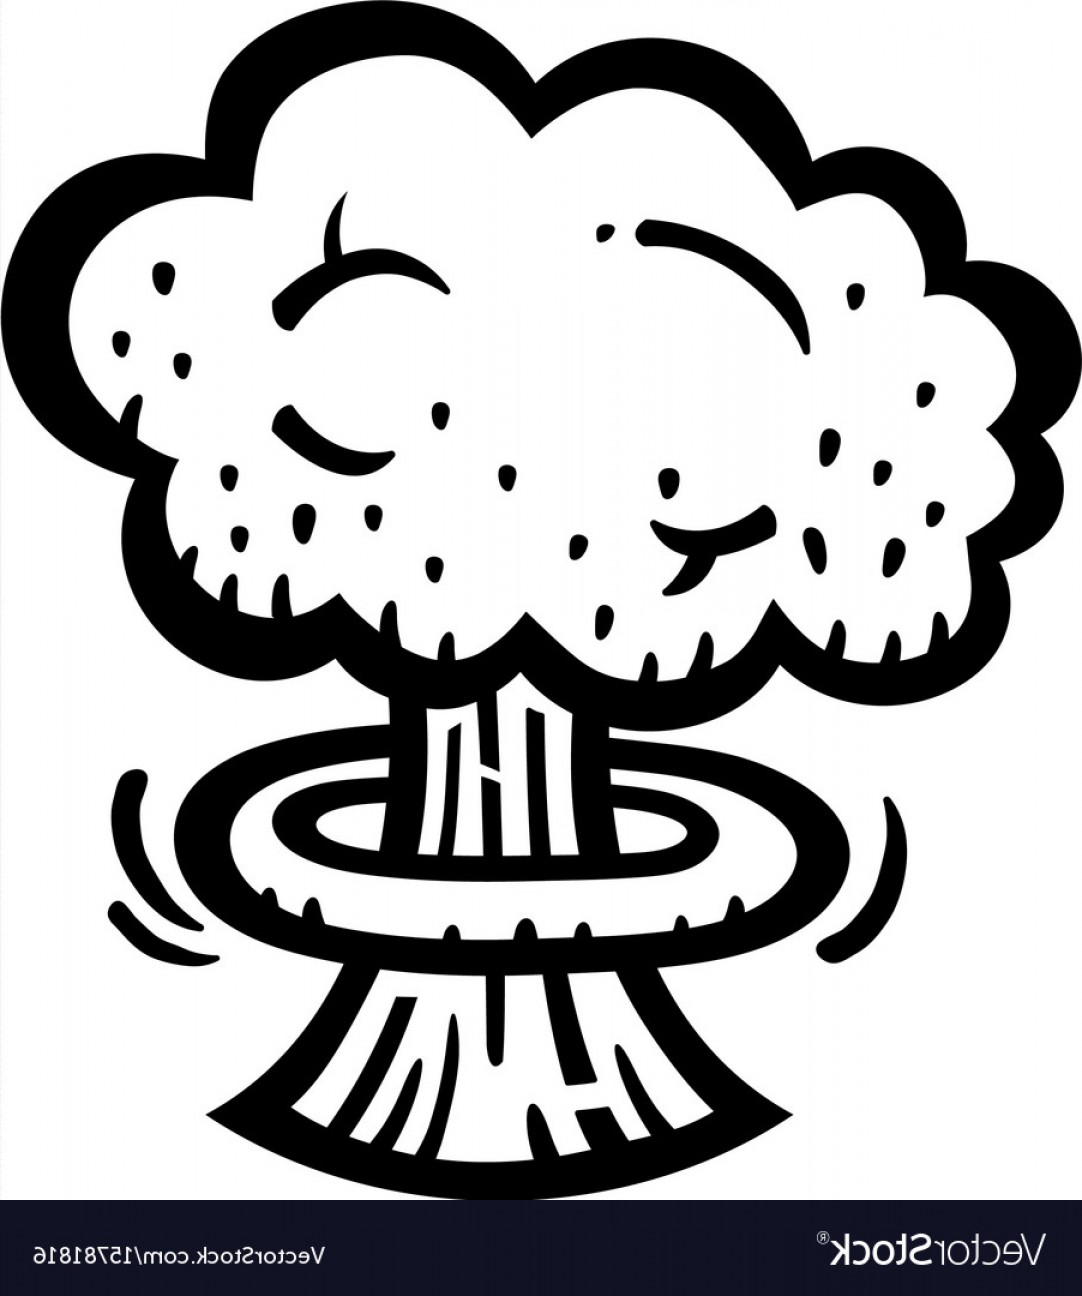 Atomic Vector Coud: Mushroom Cloud Atomic Nuclear Bomb Explosion Vector